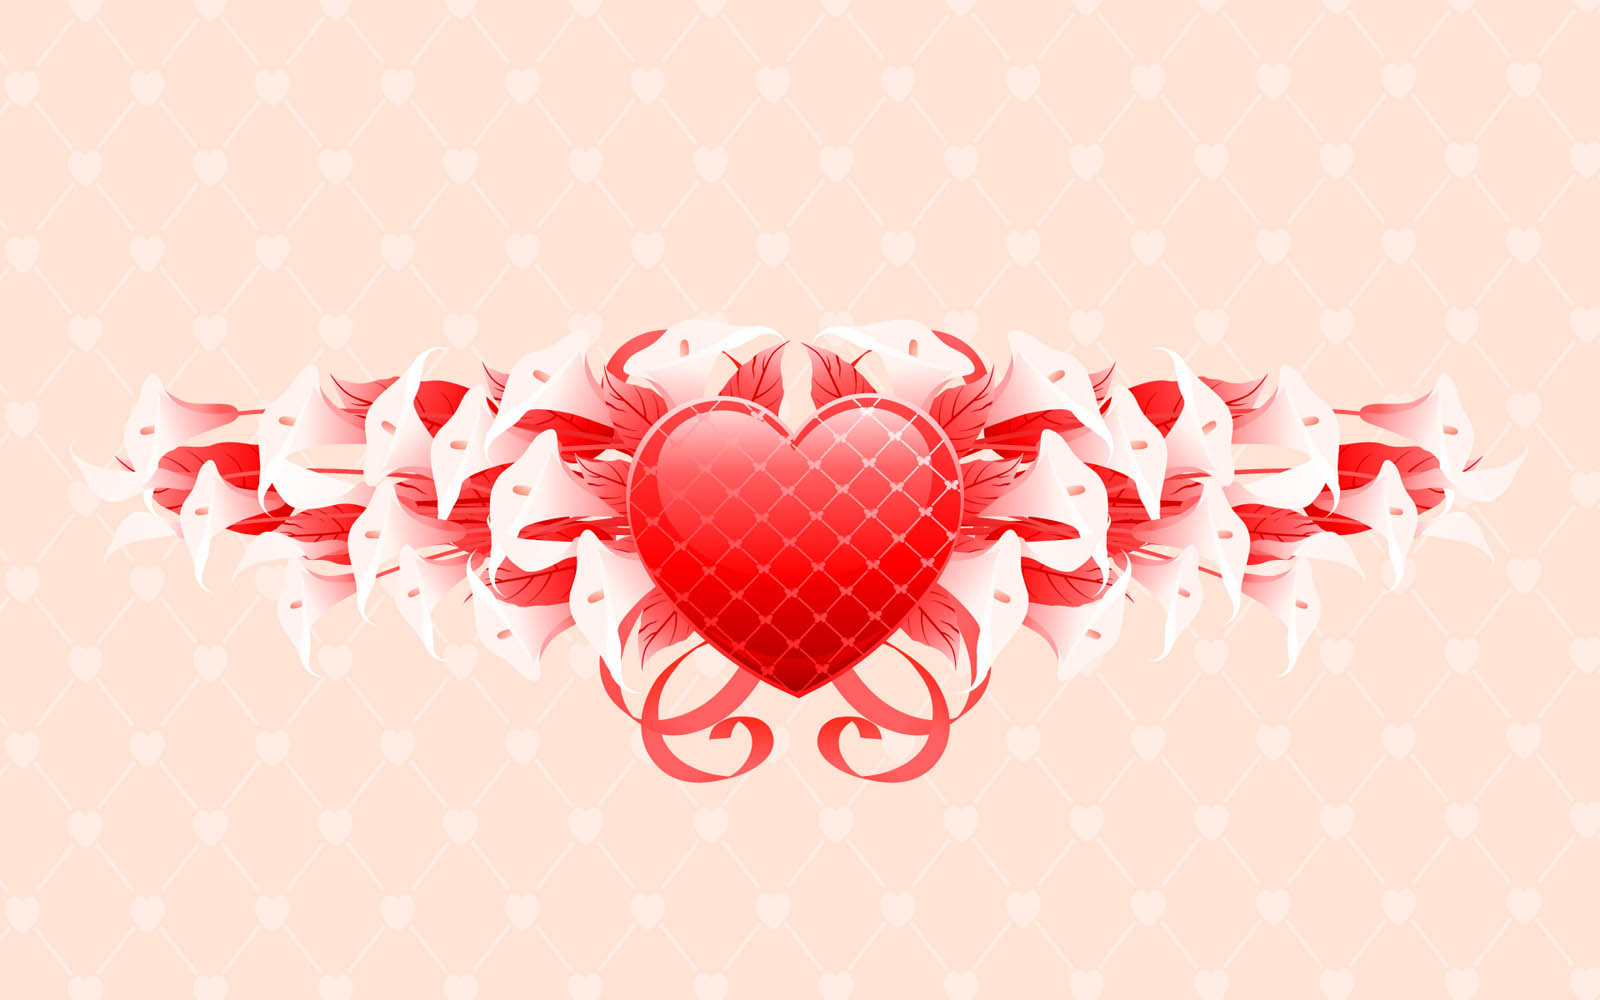 Love Wallpaper With Image : wallpapers: Vector Love Wallpapers